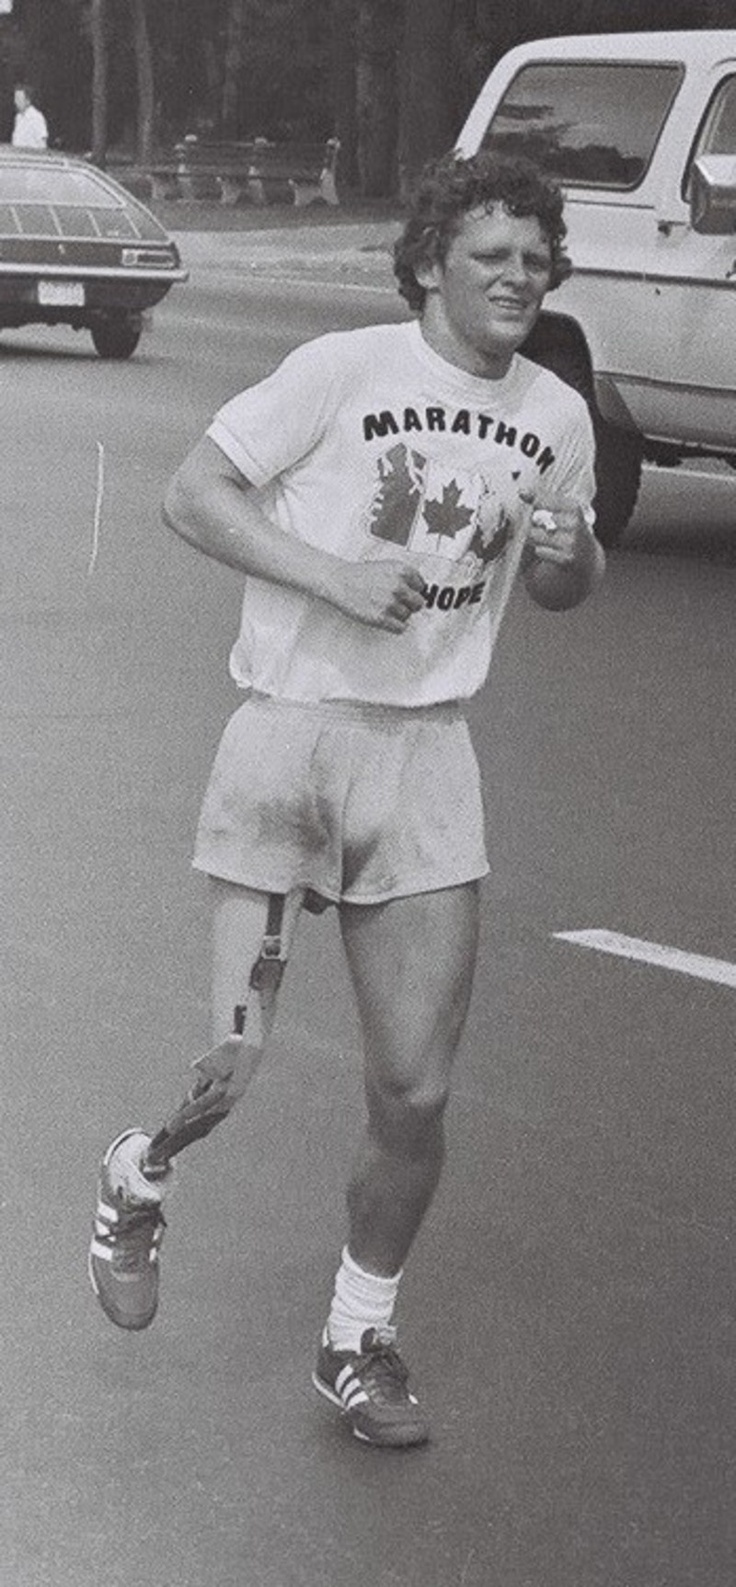 Terry Fox in Toronto during his Marathon of Hope cross-country run, July 1980.